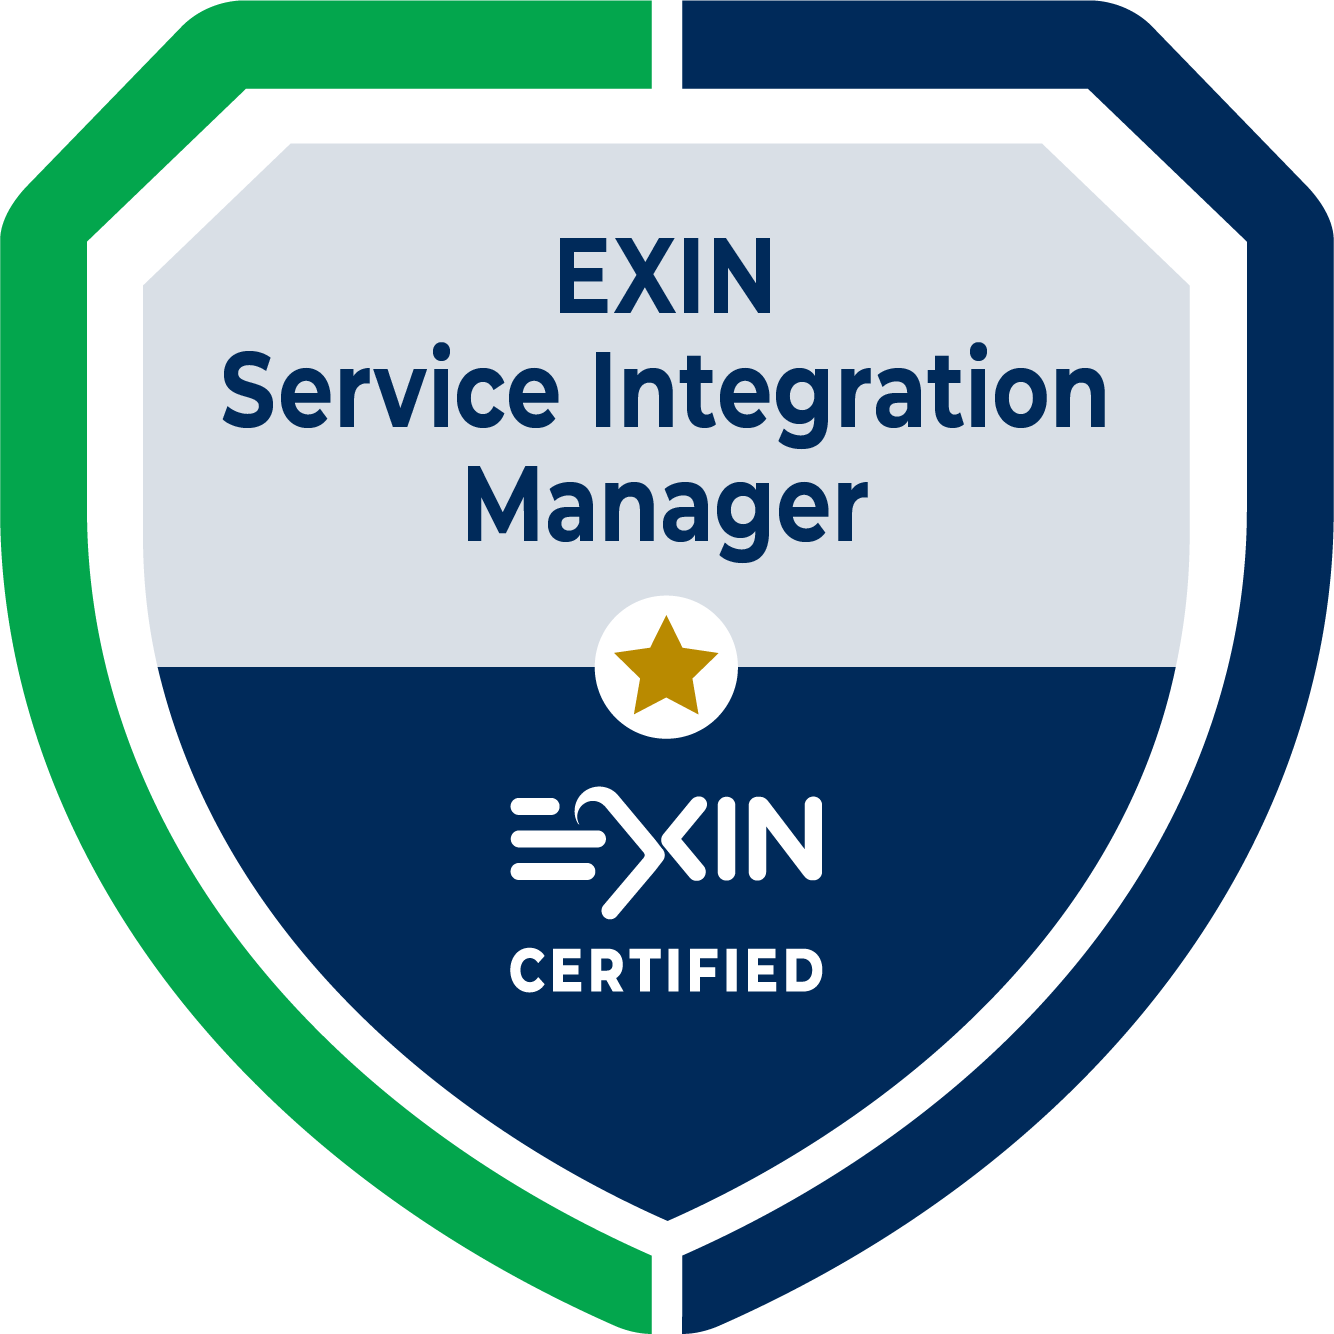 EXIN Service Integration Manager